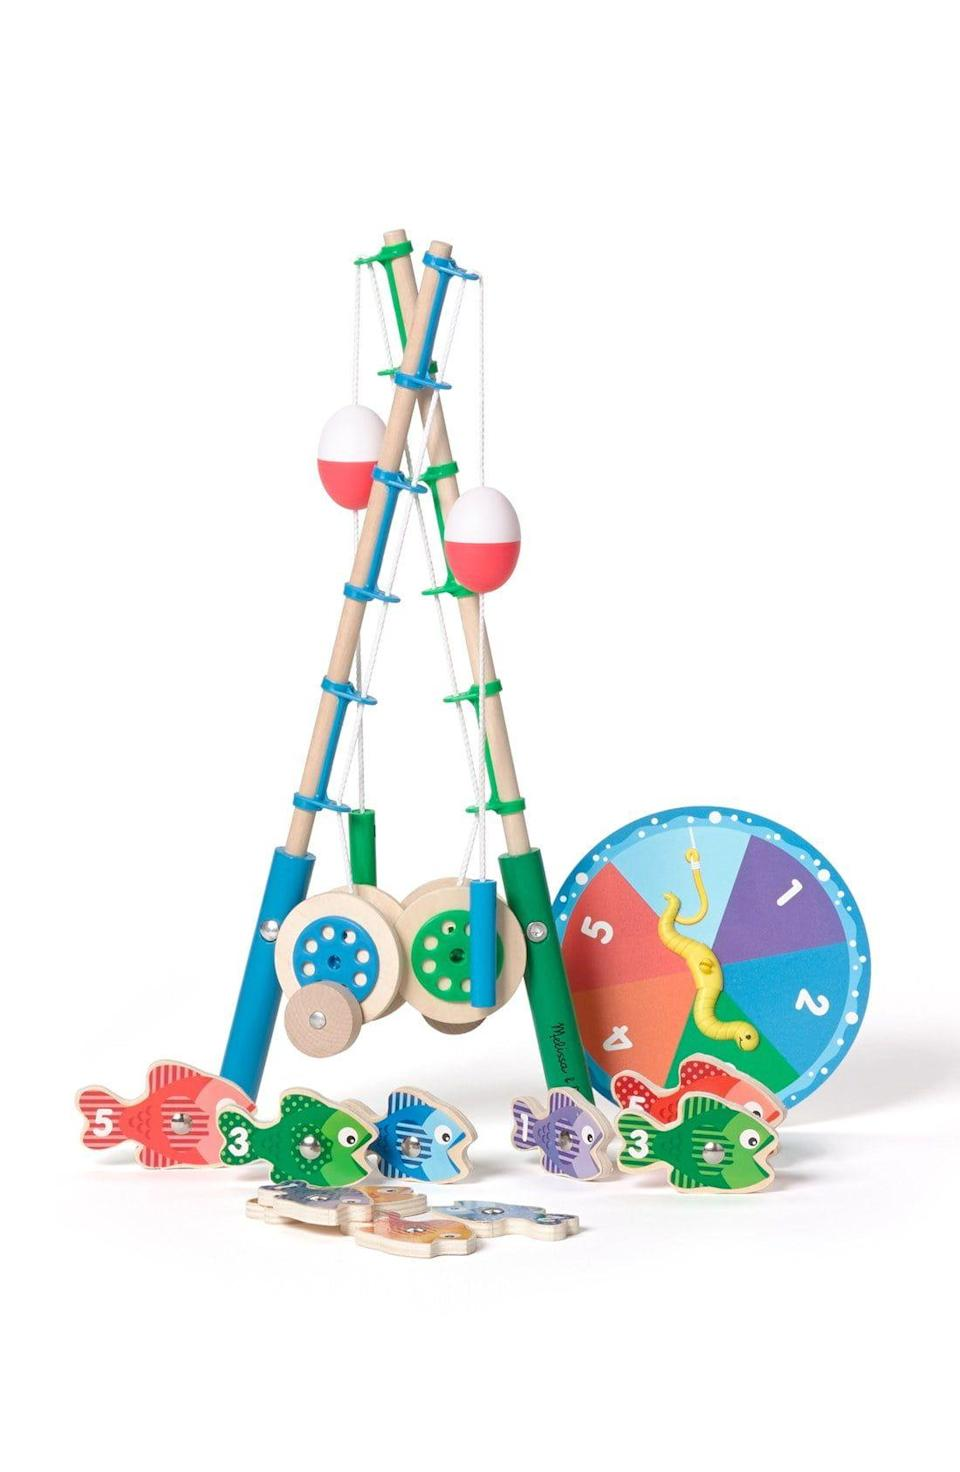 "<p><strong>MELISSA & DOUG</strong></p><p>nordstrom.com</p><p><strong>$24.99</strong></p><p><a href=""https://go.redirectingat.com?id=74968X1596630&url=https%3A%2F%2Fshop.nordstrom.com%2Fs%2Fmelissa-doug-catch-count-fishing-game%2F3873198&sref=https%3A%2F%2Fwww.redbookmag.com%2Flife%2Fg34811477%2Fblack-friday-cyber-monday-baby-deals-2020%2F"" rel=""nofollow noopener"" target=""_blank"" data-ylk=""slk:Shop Now"" class=""link rapid-noclick-resp"">Shop Now</a></p><p>Easy as 1, 2, 3.</p>"